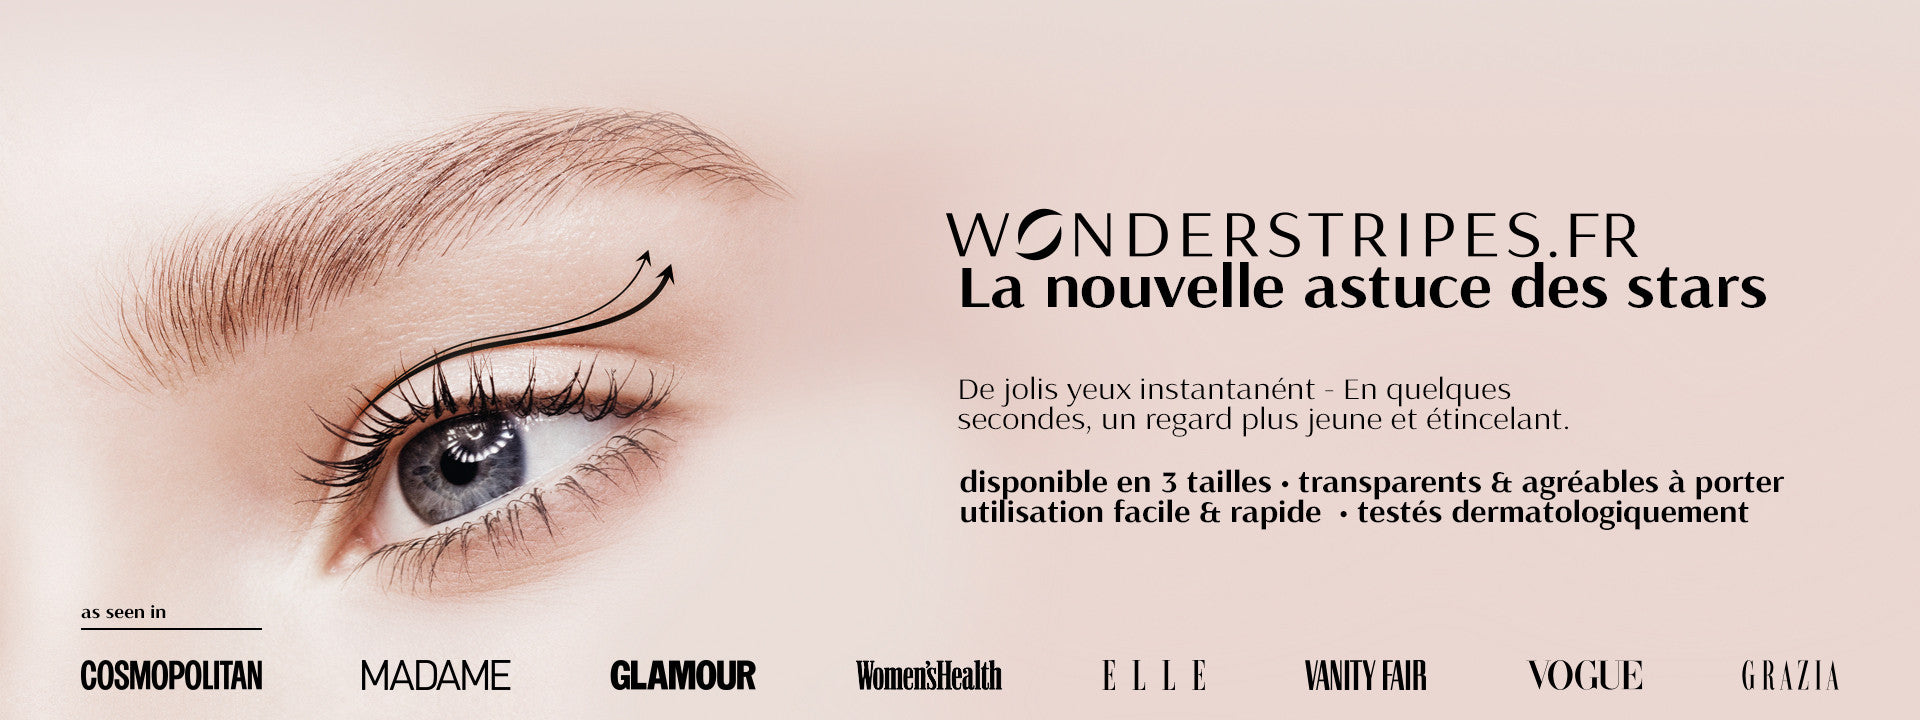 WONDERSTRIPES.FR